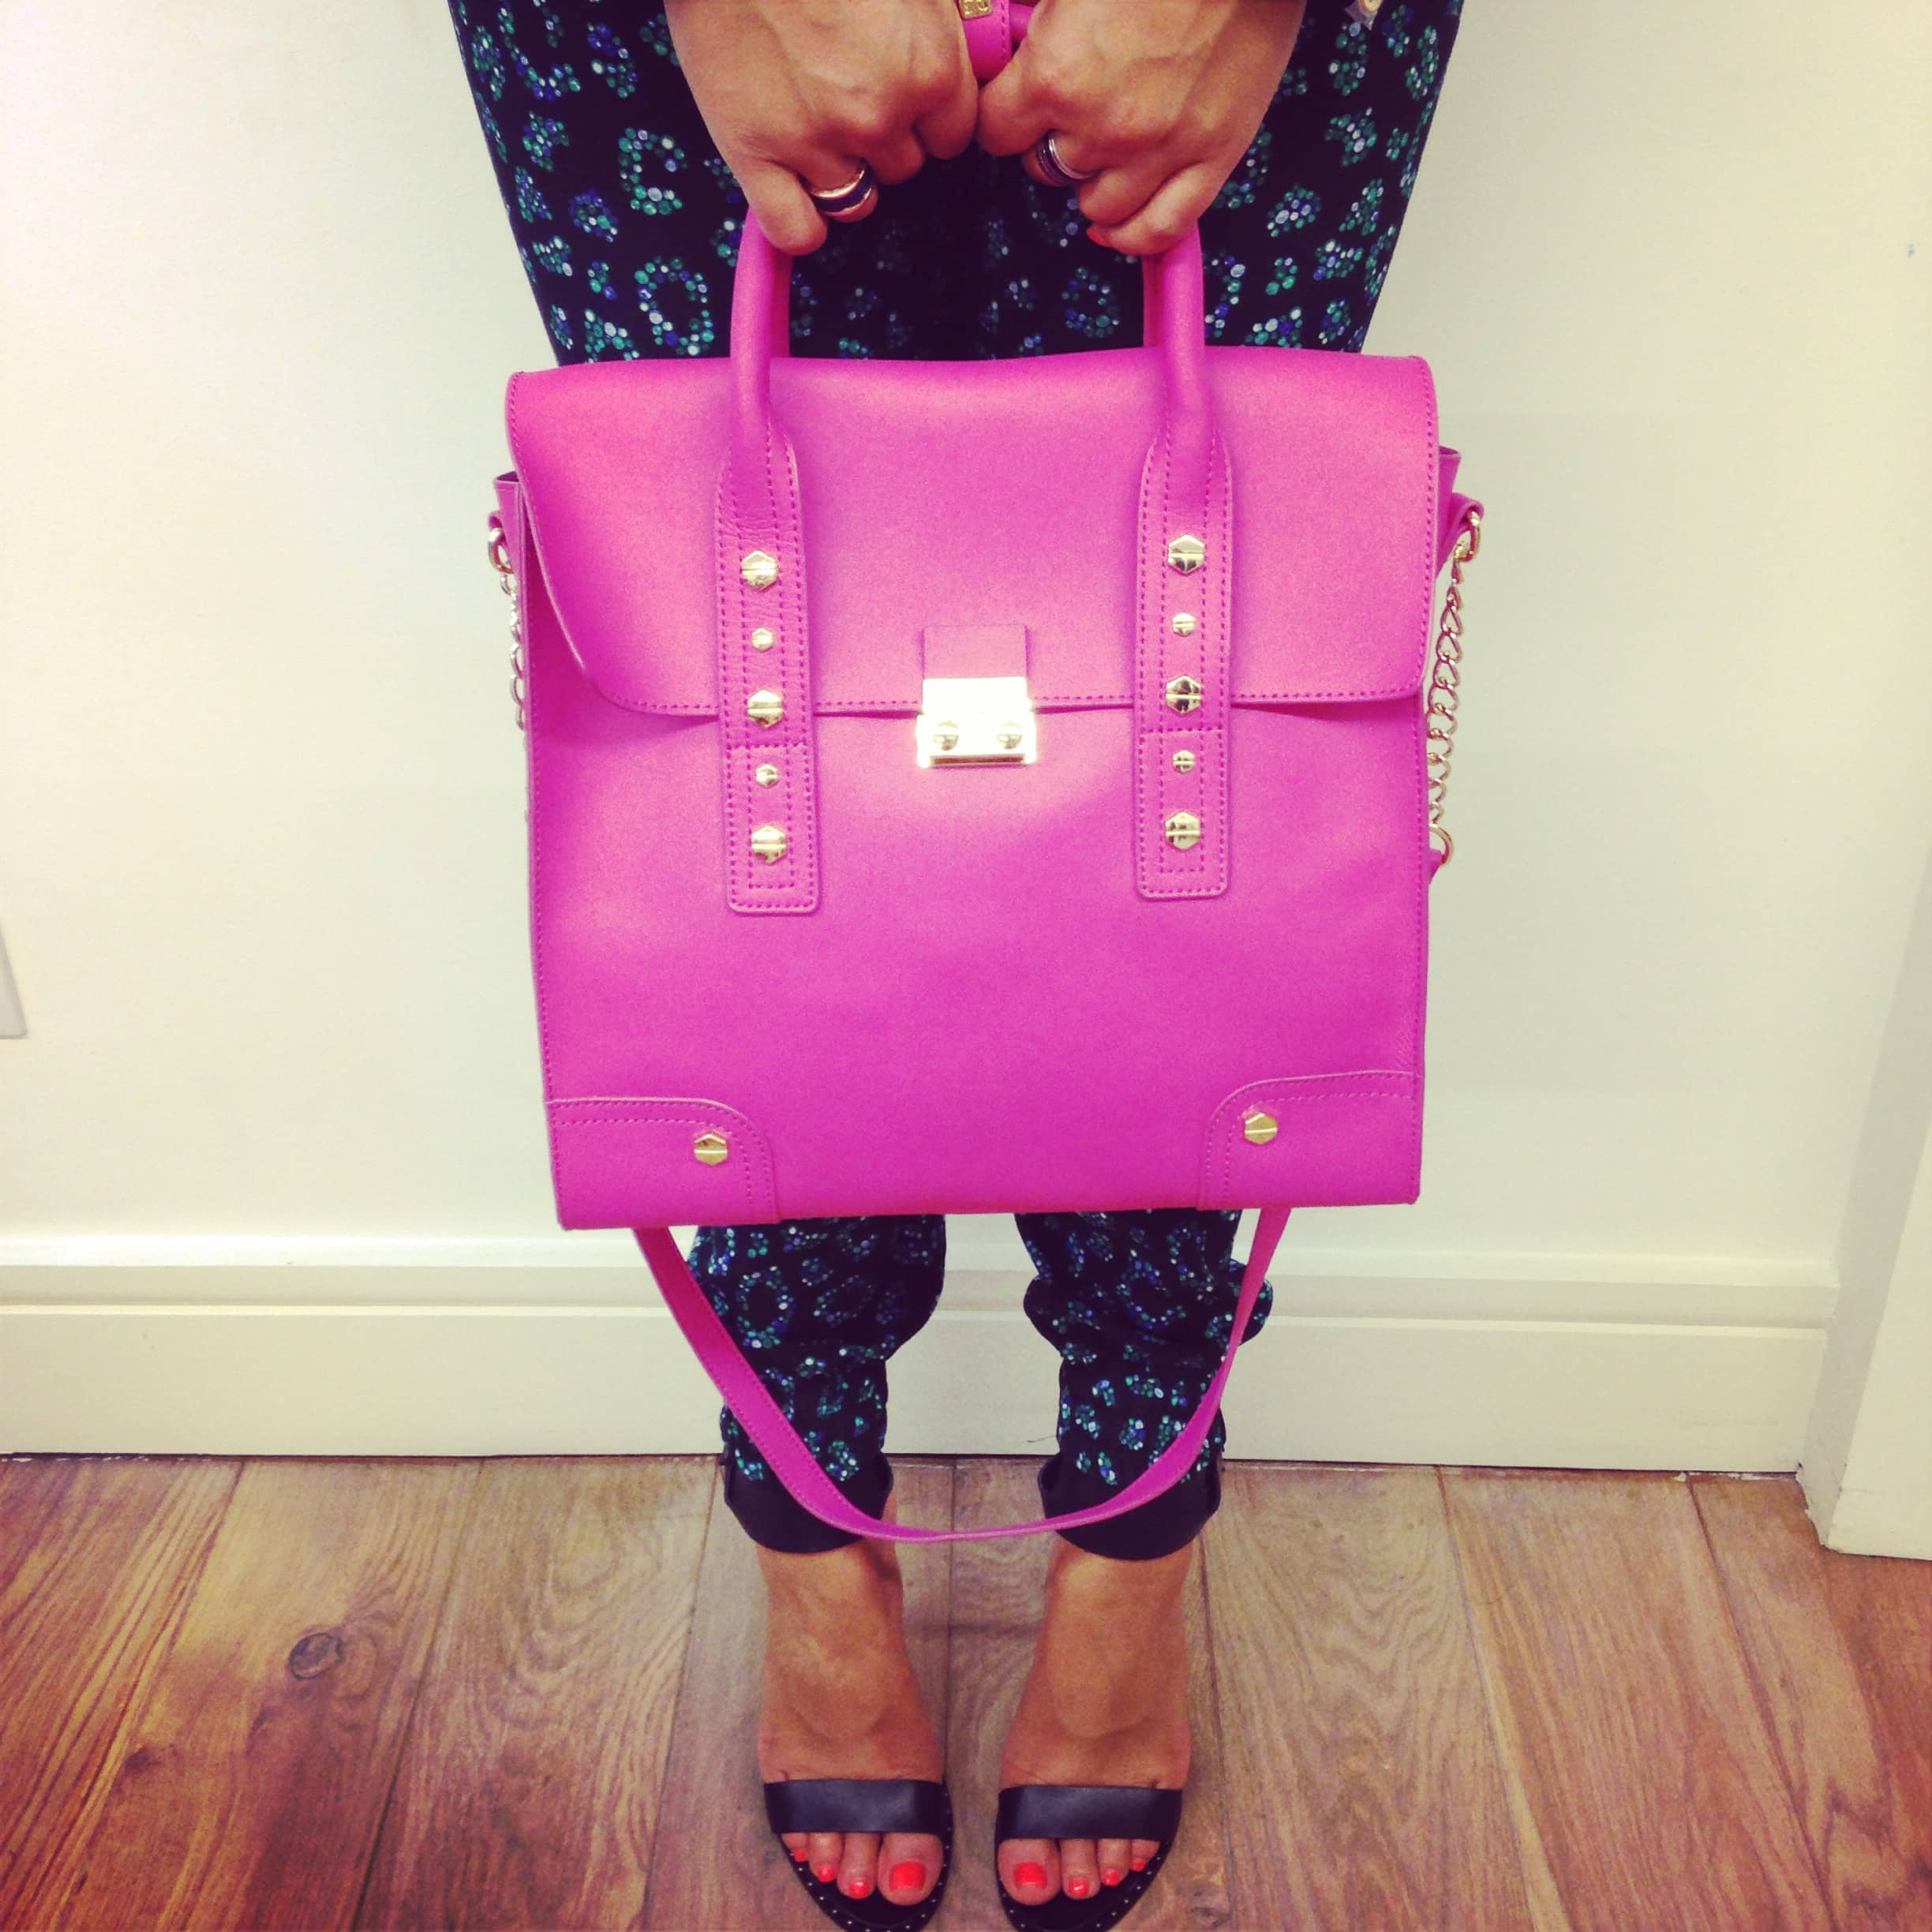 WIN this Juicy Couture bag worth £250 plus tickets to the #JuicyLive event!! - The Style Traveller